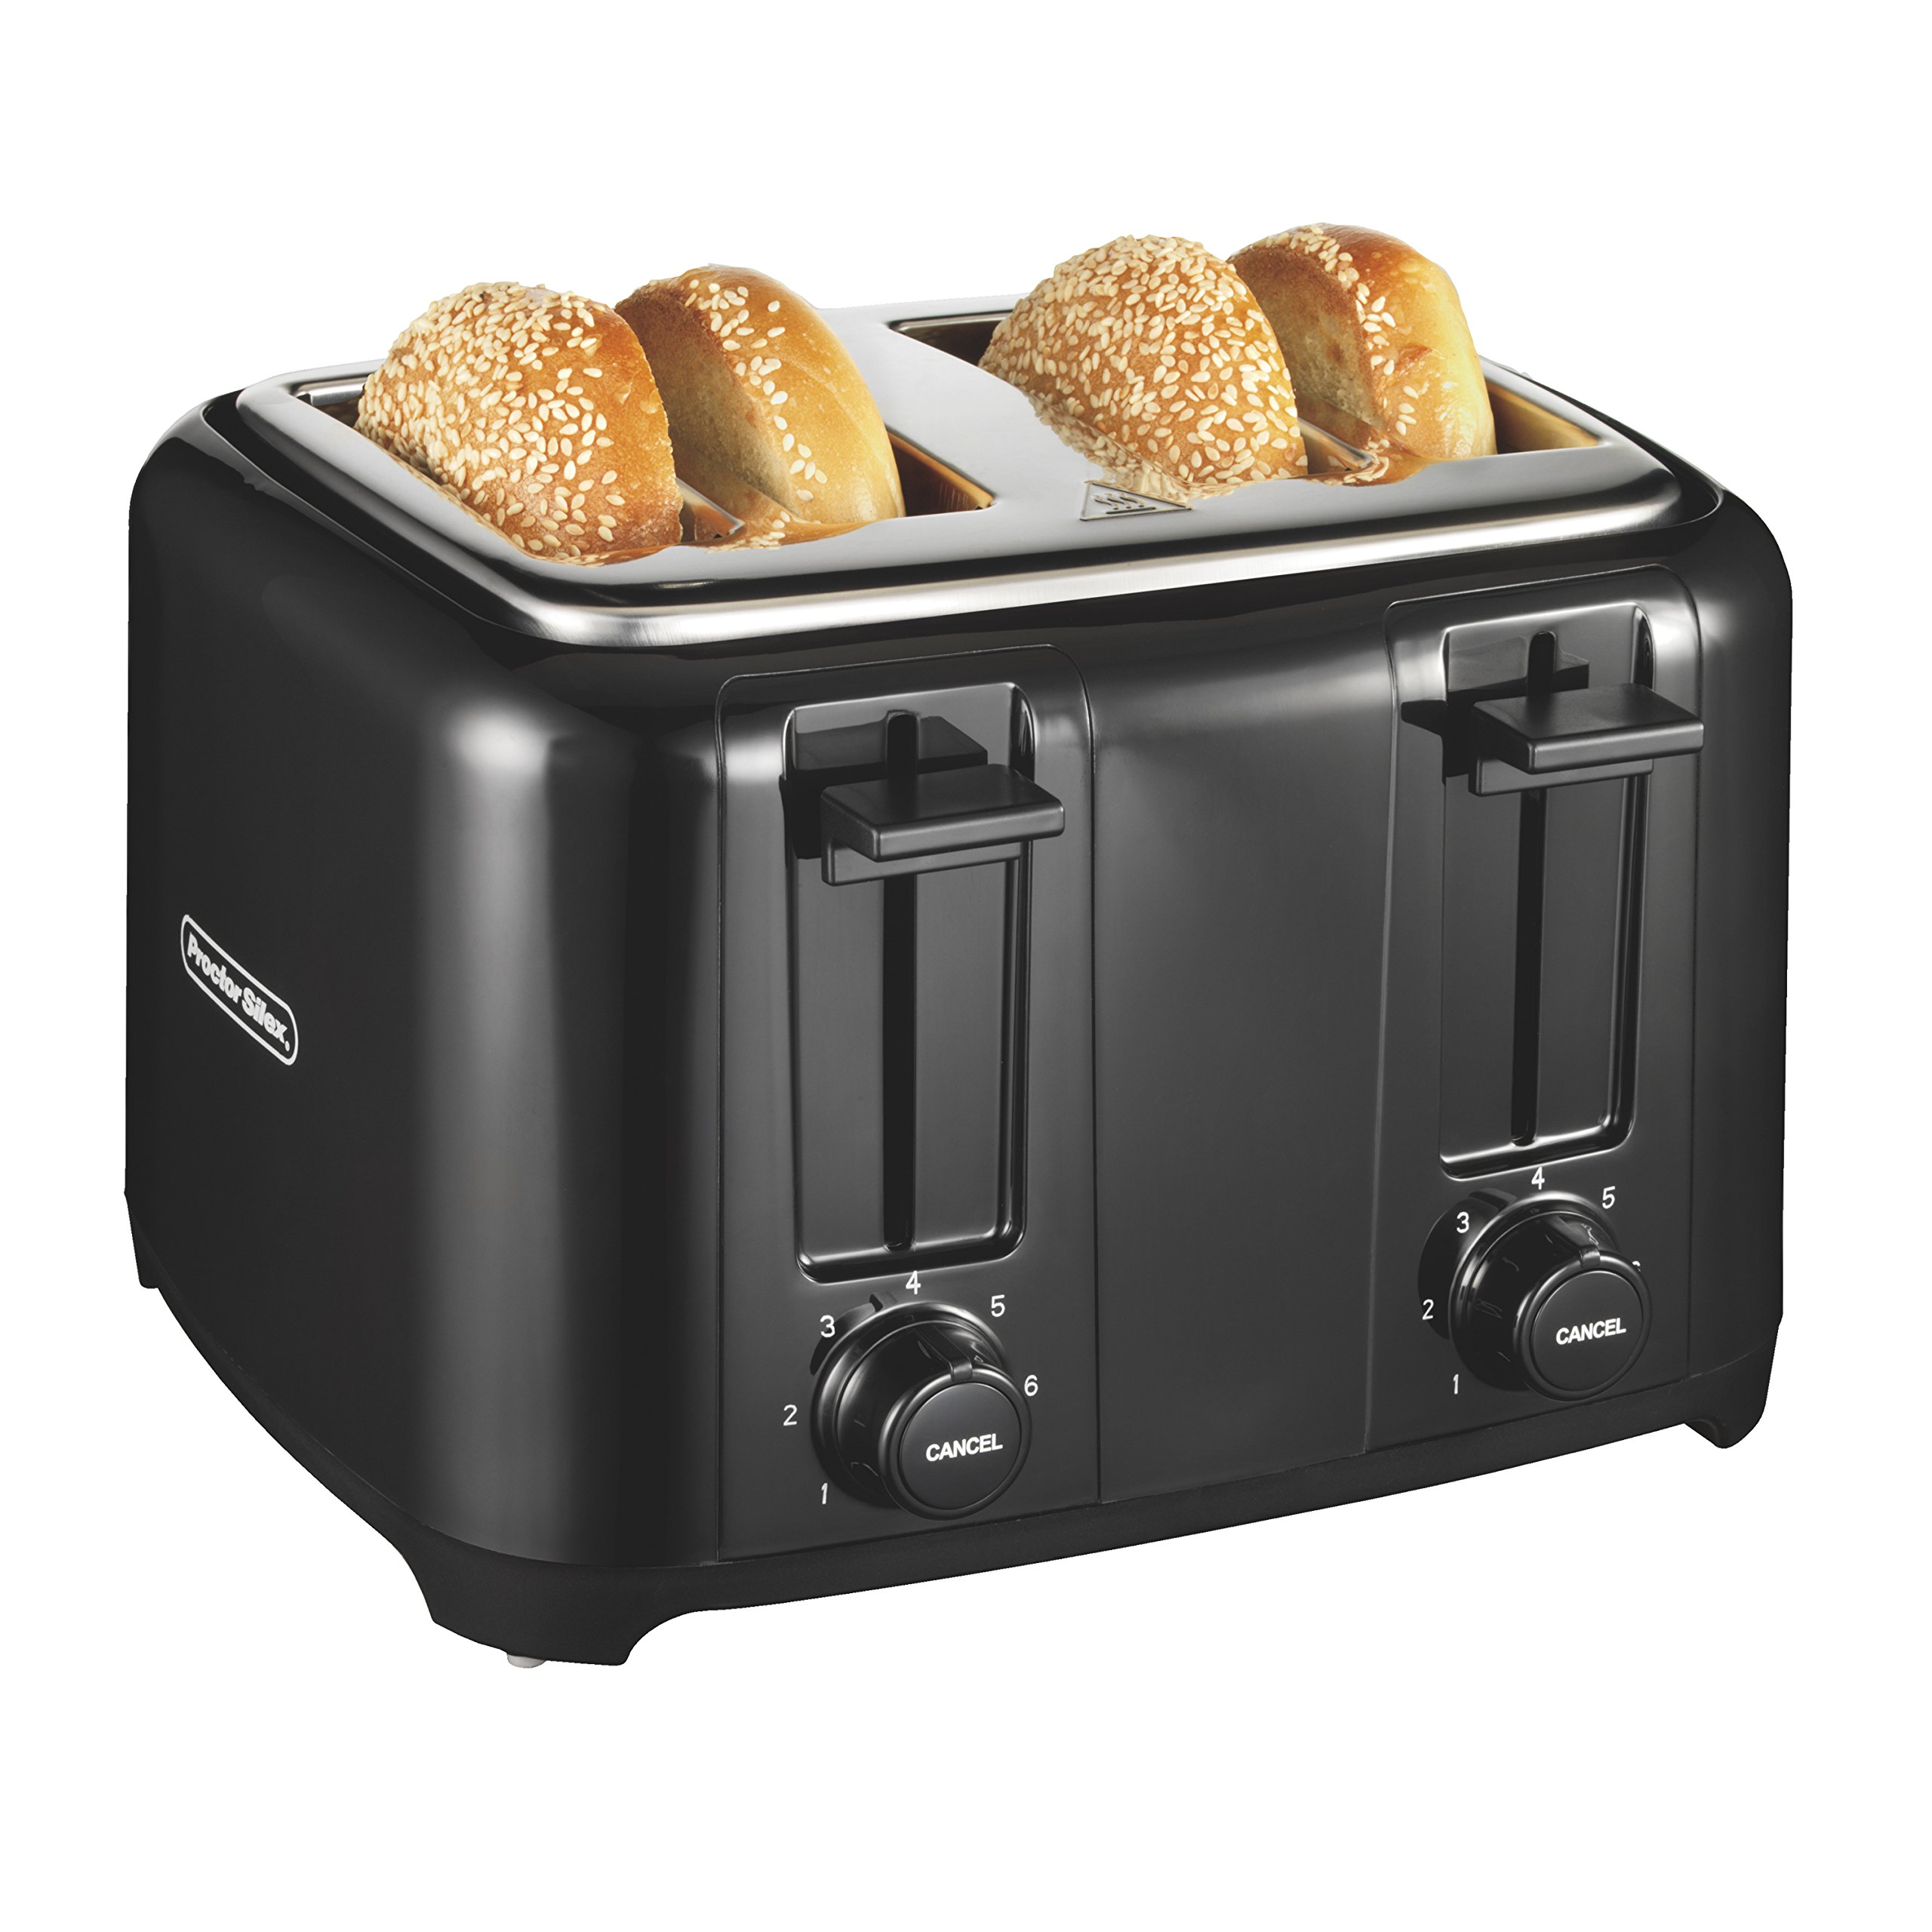 Proctor Silex 4-Slice Extra-Wide Slot Toaster With Cool Wall, Shade Selector, Toast Boost, Auto-Shutoff And Cancel Button, Black (24215) by Proctor Silex